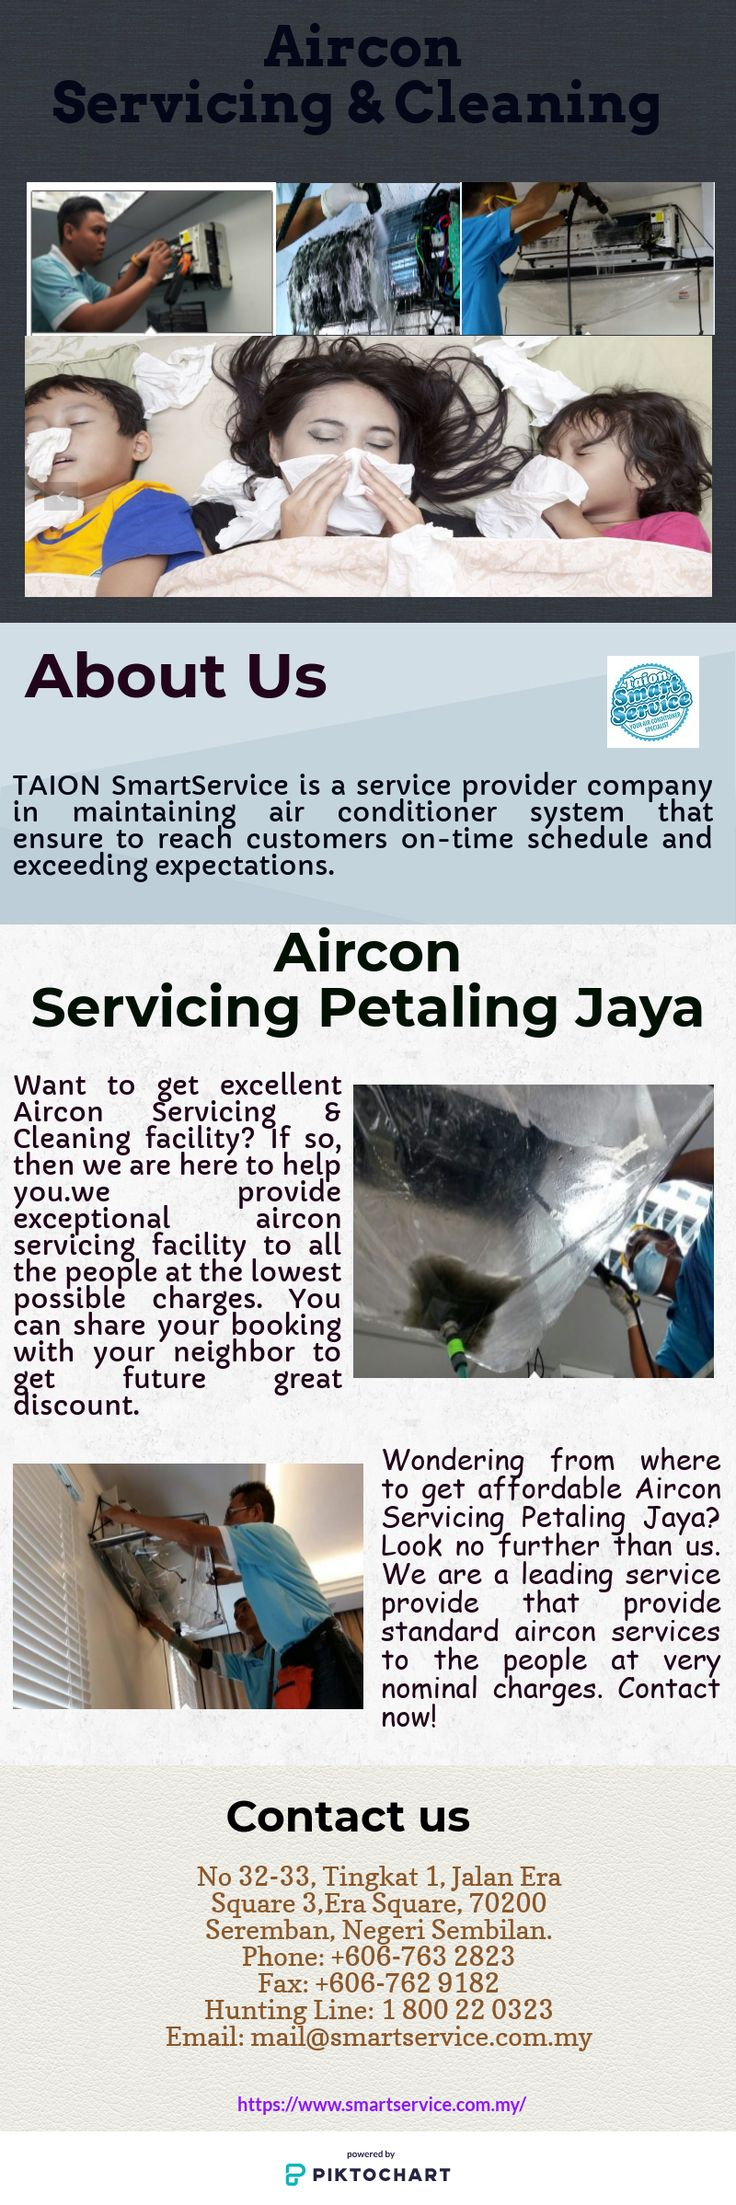 Wondering from where to get affordable Aircon Servicing Petaling Jaya? Look no further than us. We are a leading service provide that provide standard aircon services to the people at very nominal charges. Contact now!